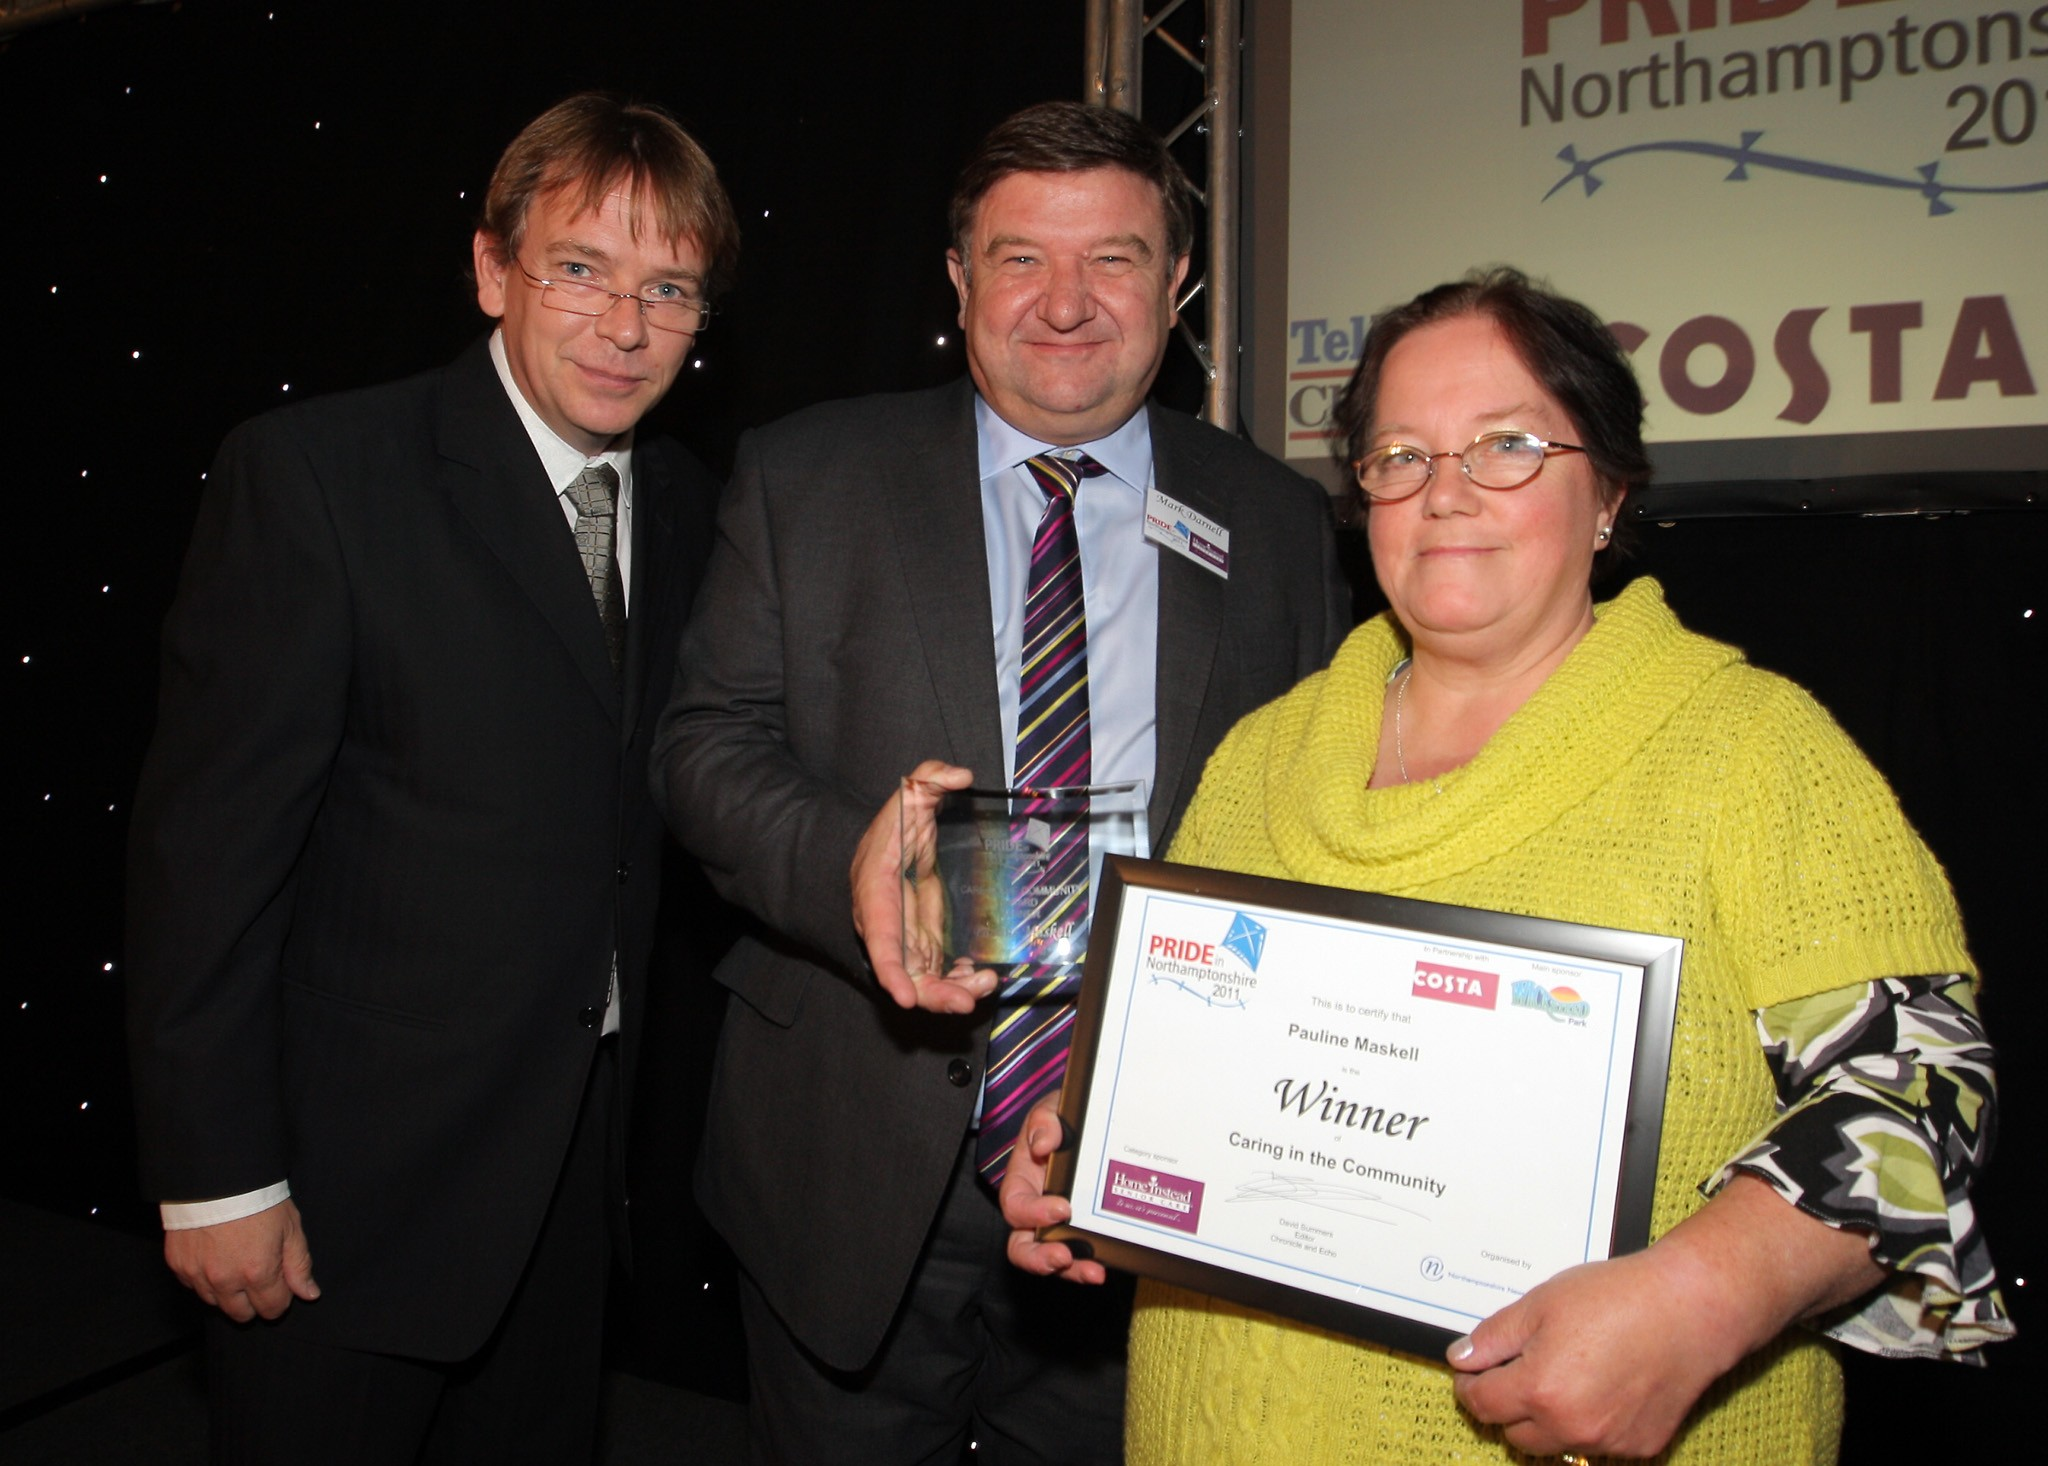 Home Instead East Northants owner Mark Darnell and celebrity guest Adam Woodyatt next to award winner Pauline Maskell